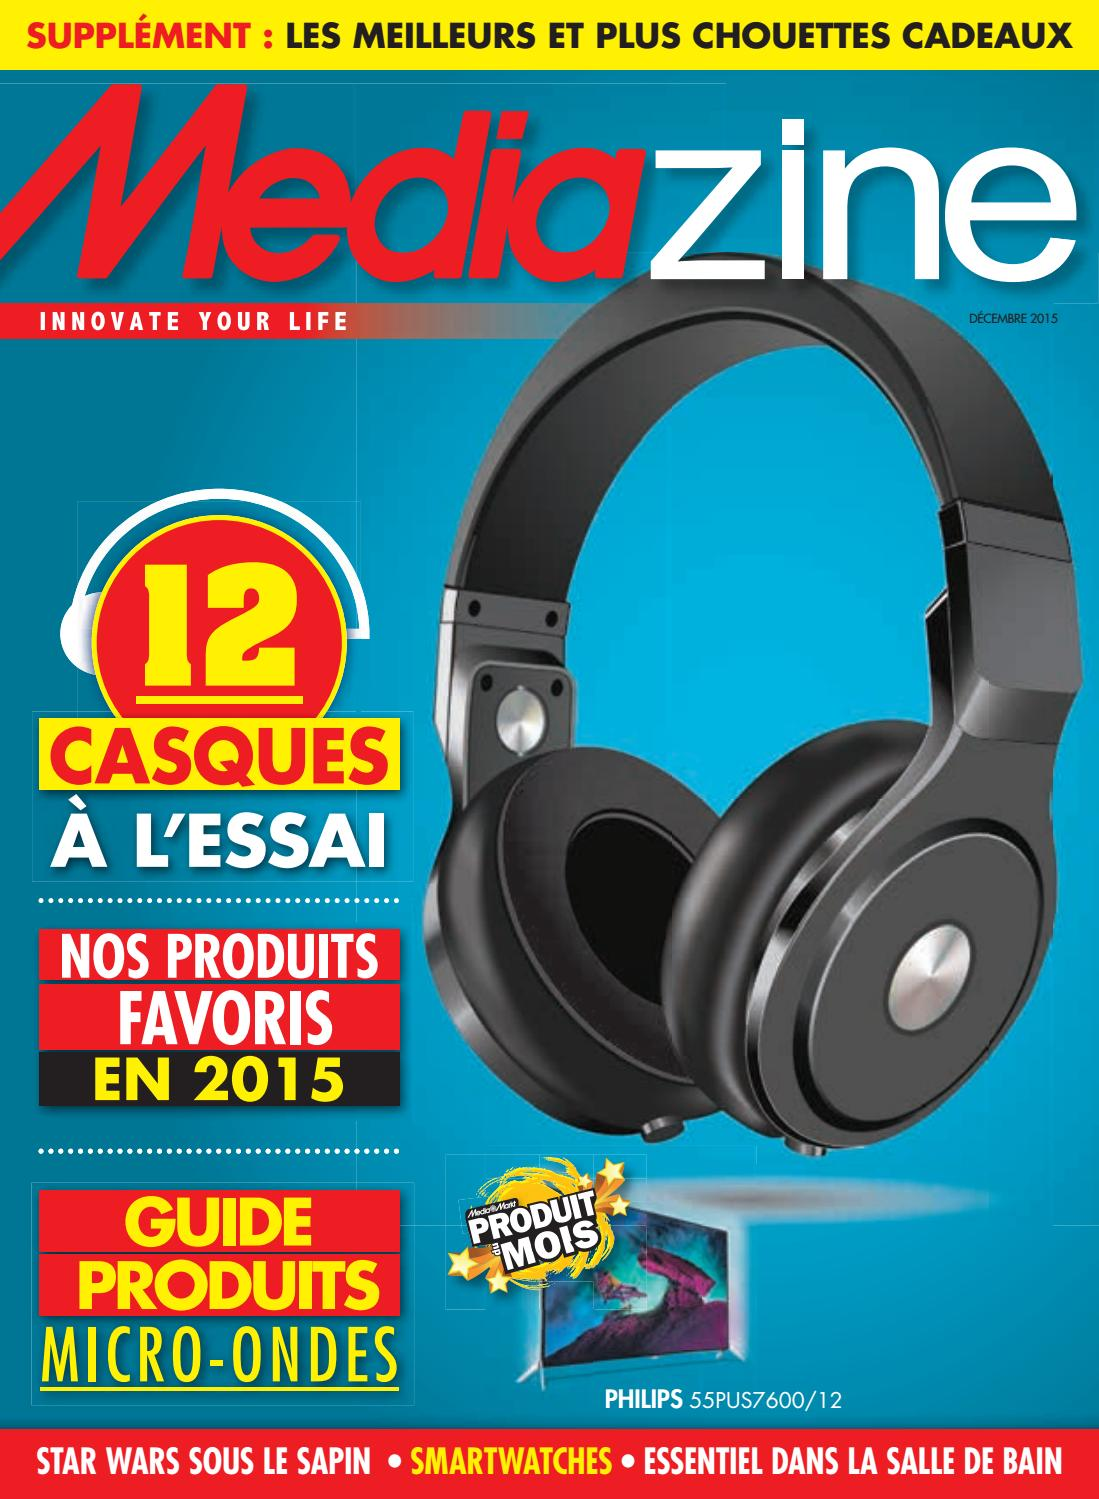 Av asia pacific magazine the new samsung smart signage platform av - Av Issue 28 Mediazine Belgique D Cembre 2015